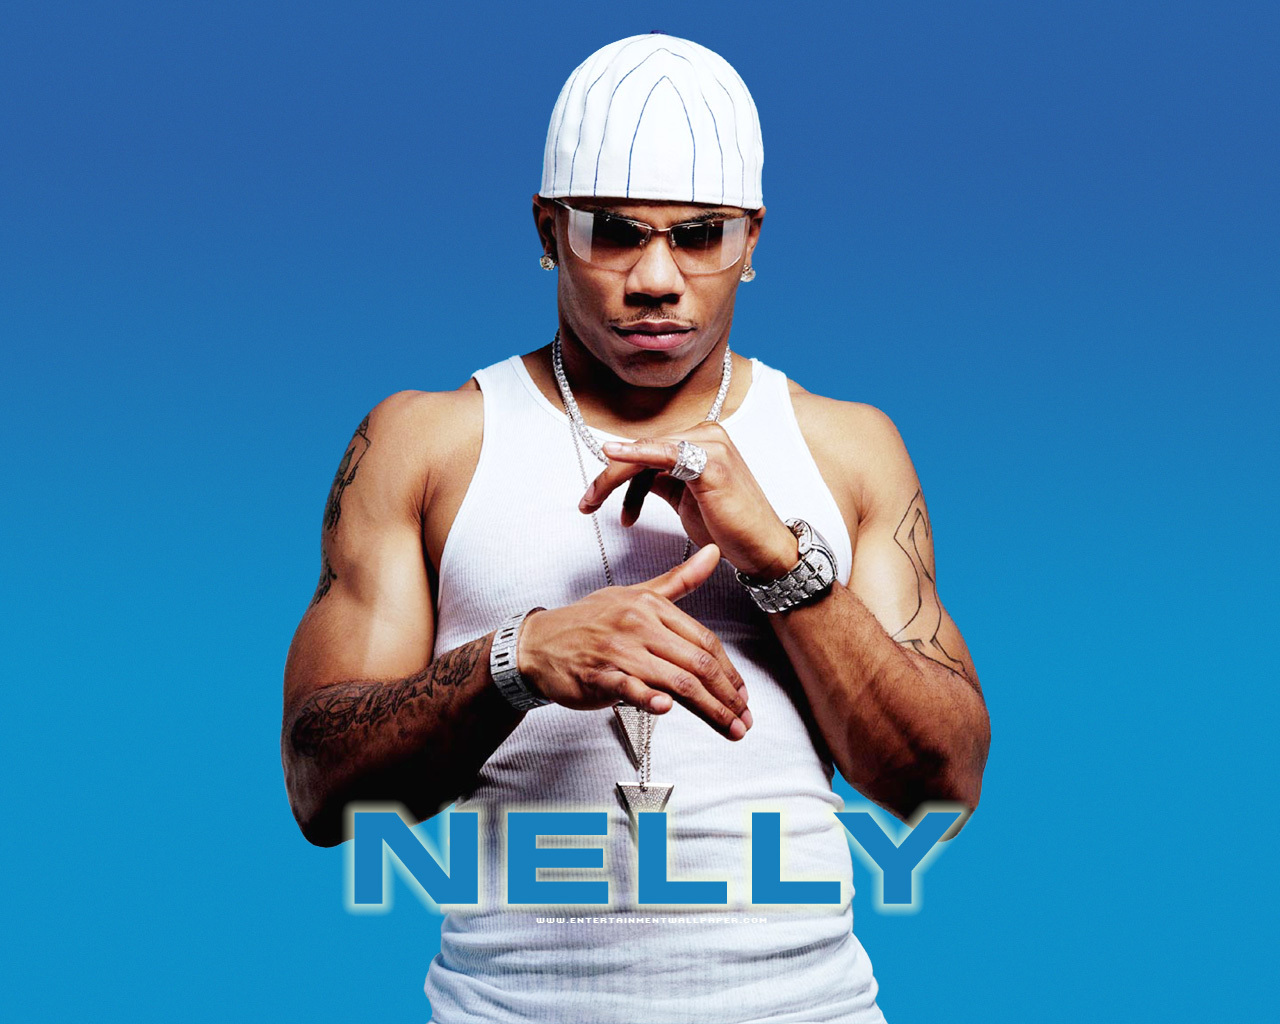 Nelly Nelly